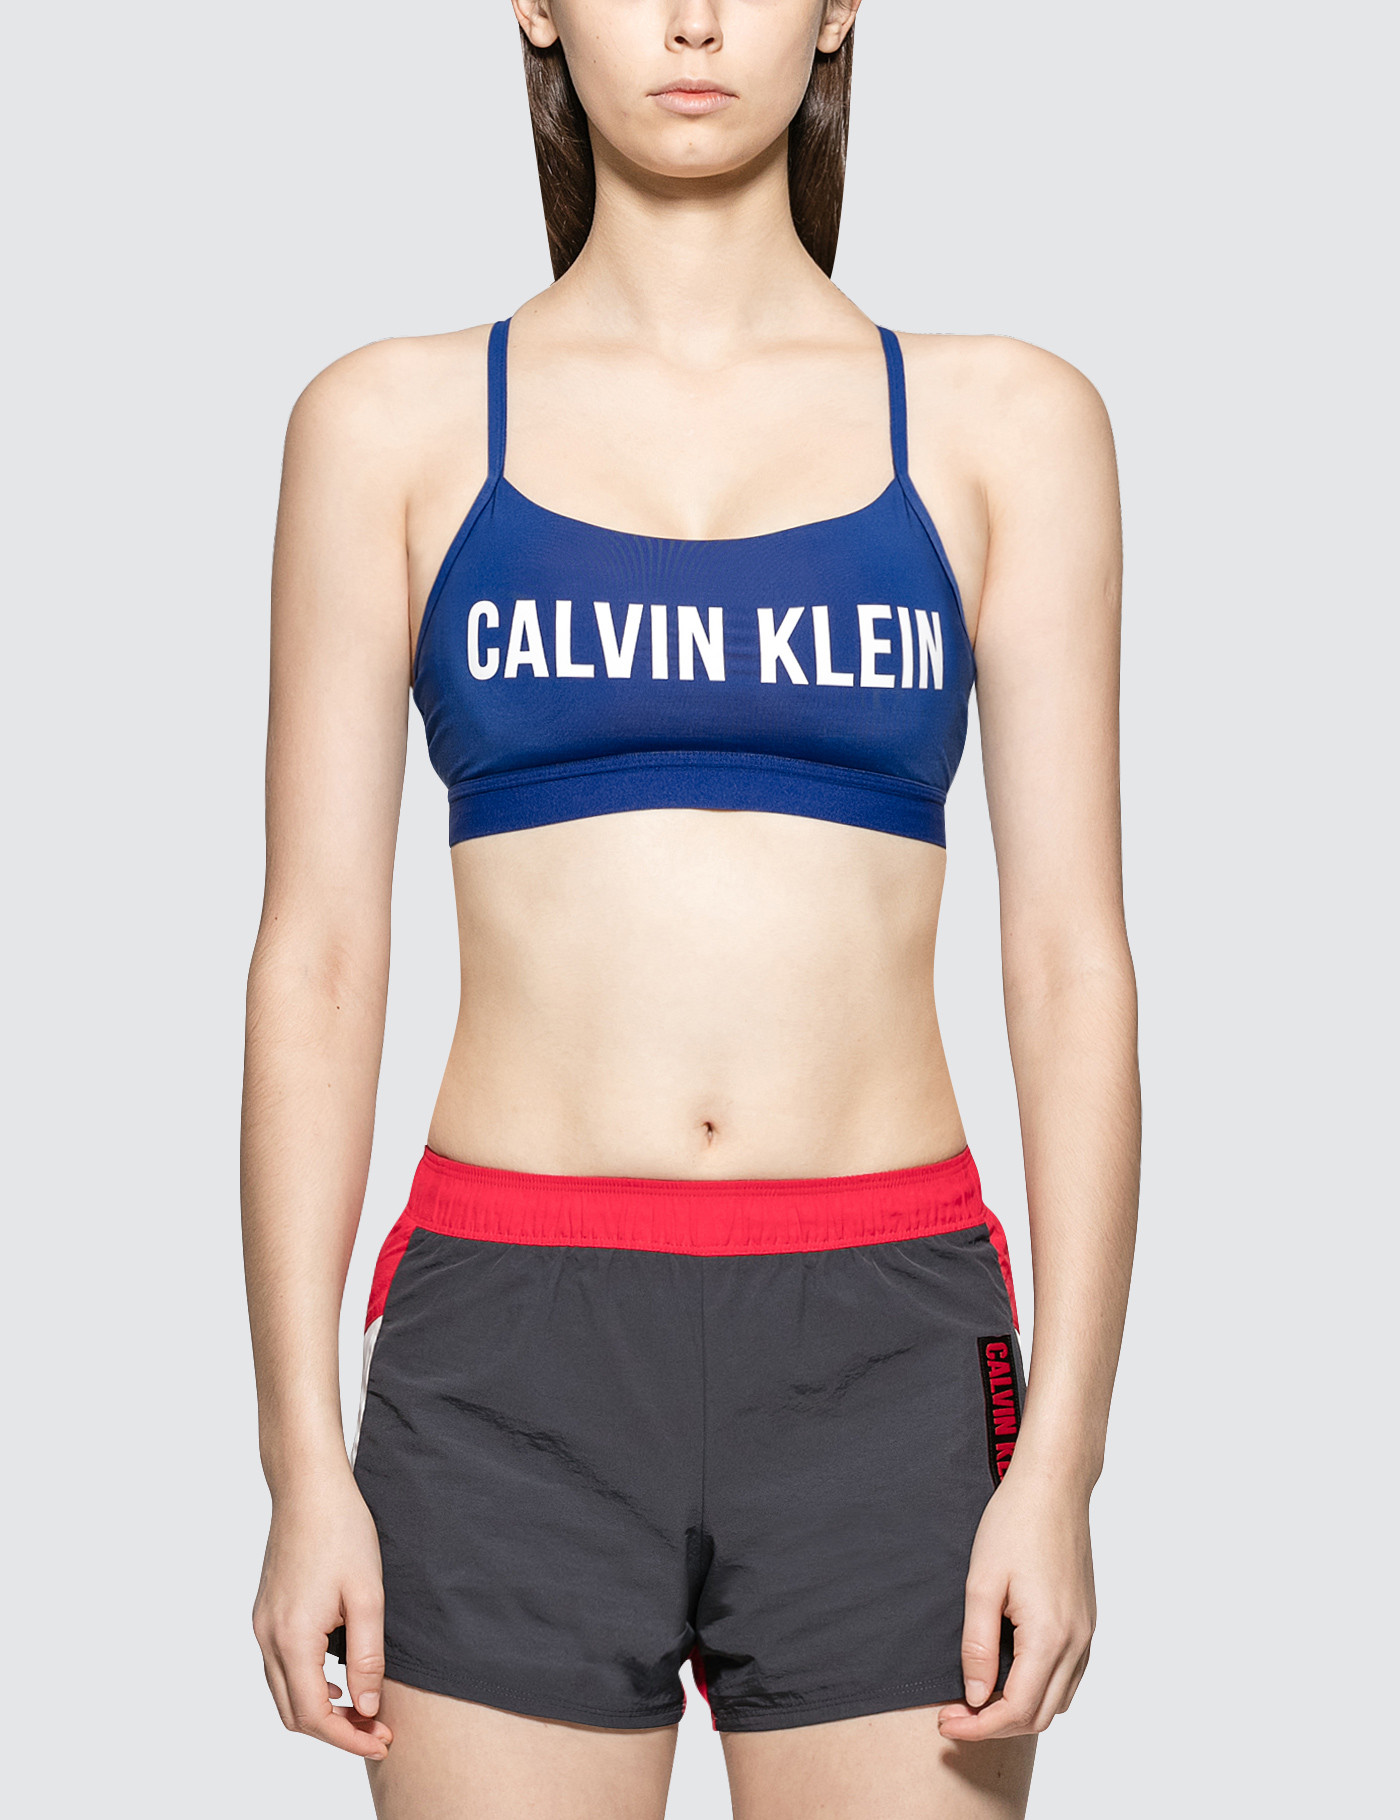 d04756eb9 ... Calvin Klein Performance Strappy Bra Top With Upper Color Panel ...